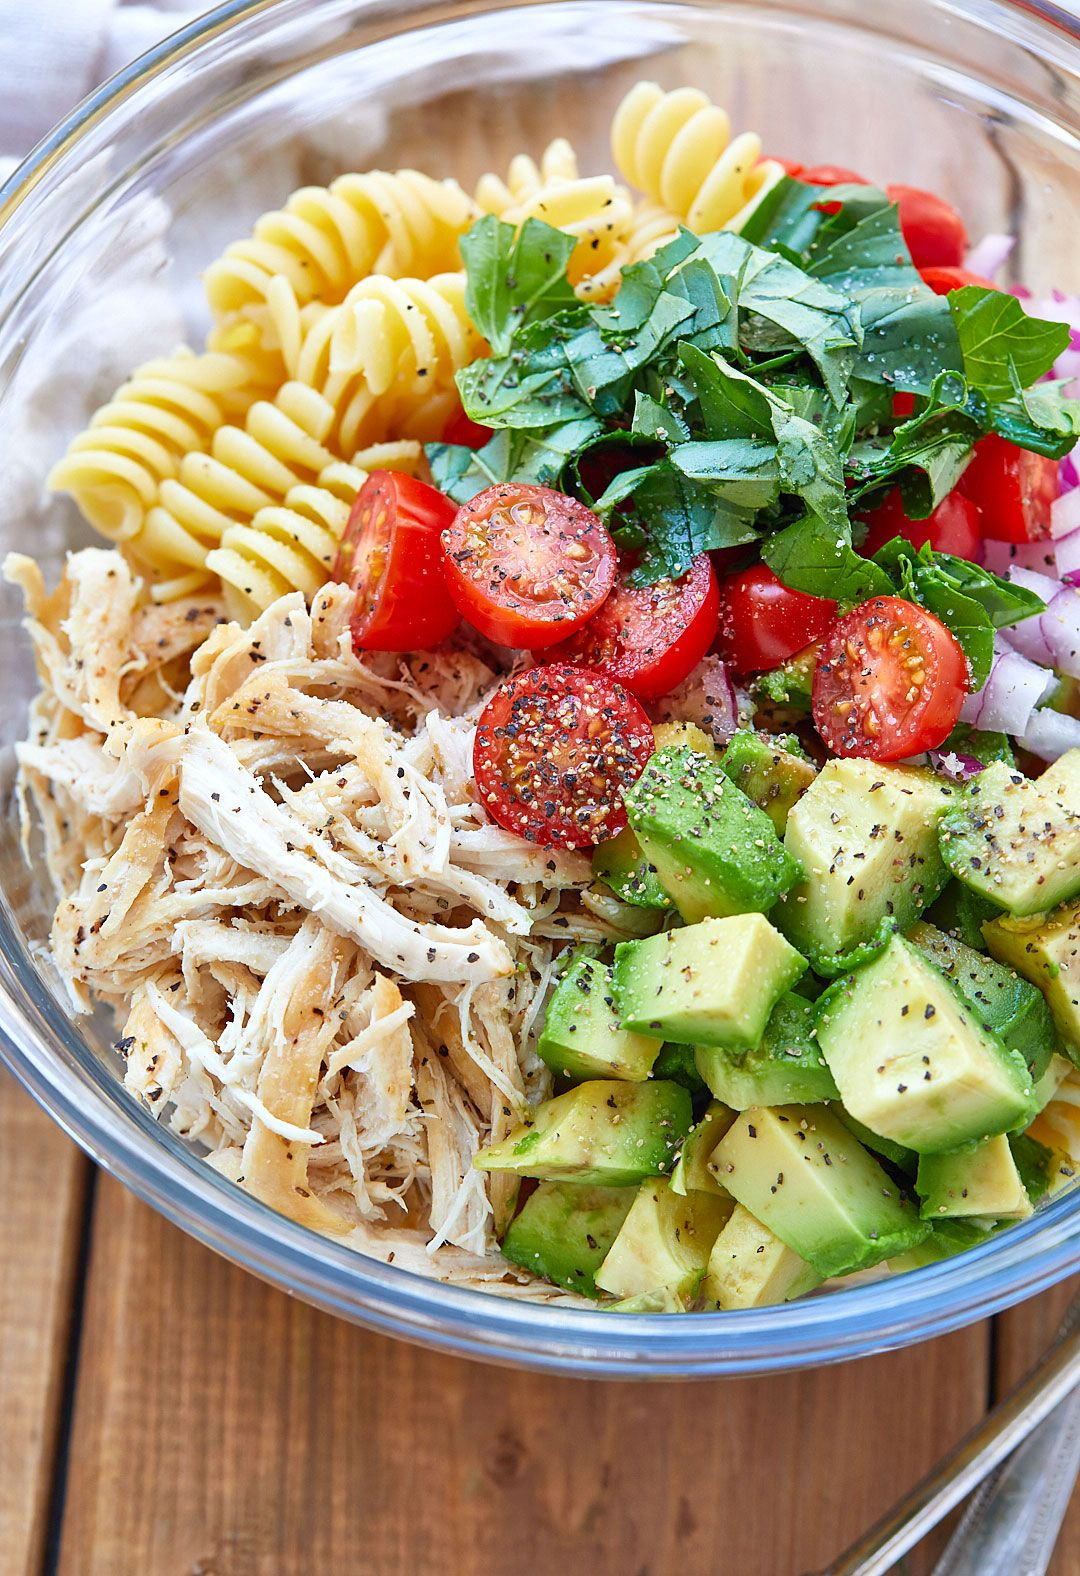 Healthy Chicken Pasta Salad with Avocado, Tomato, and Basil  -   13 healthy recipes For The Week veggies ideas